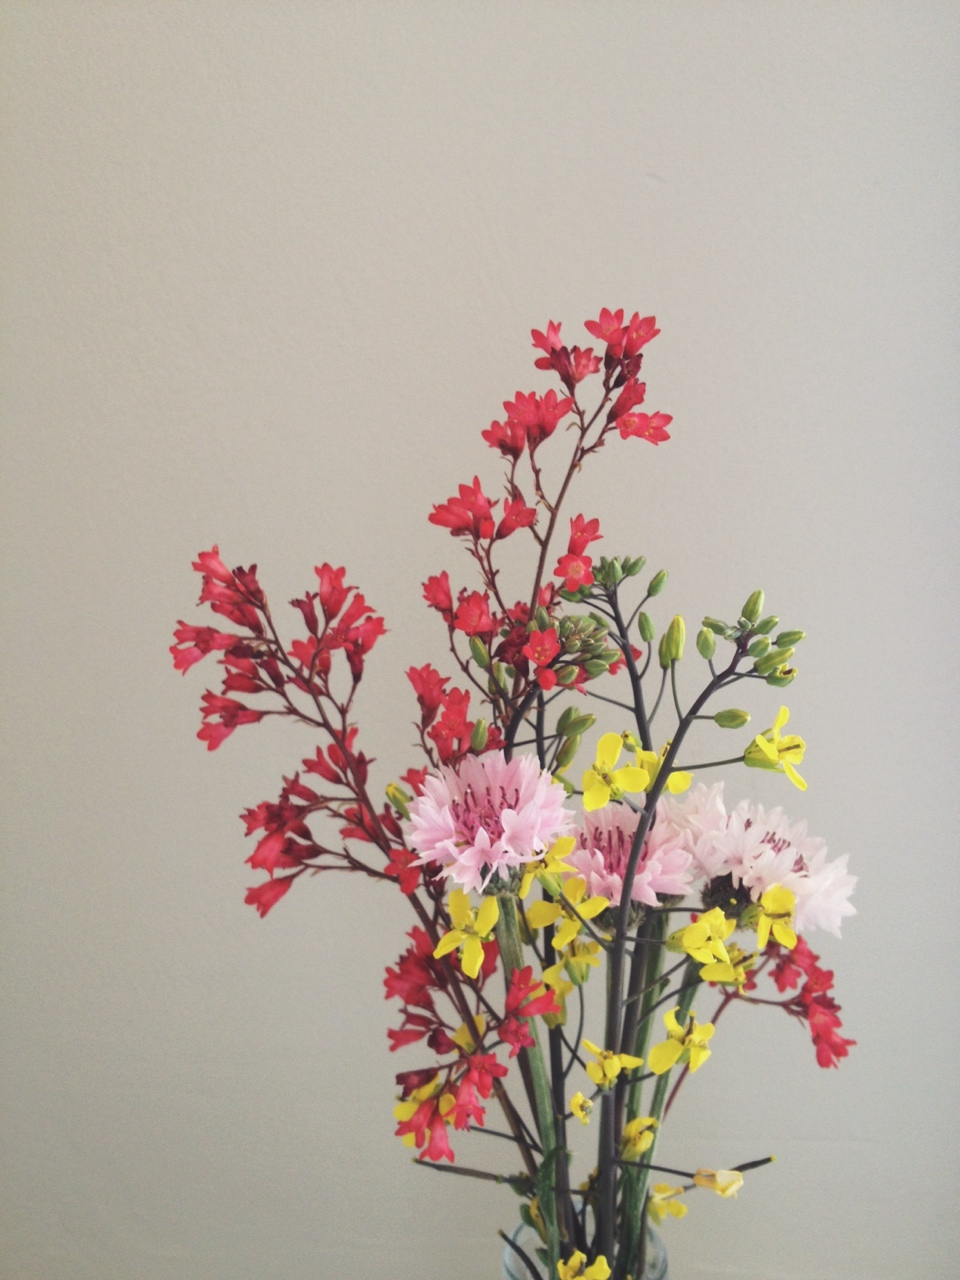 Freshly painted walls and flowers from the yard. The yellow ones are kale.